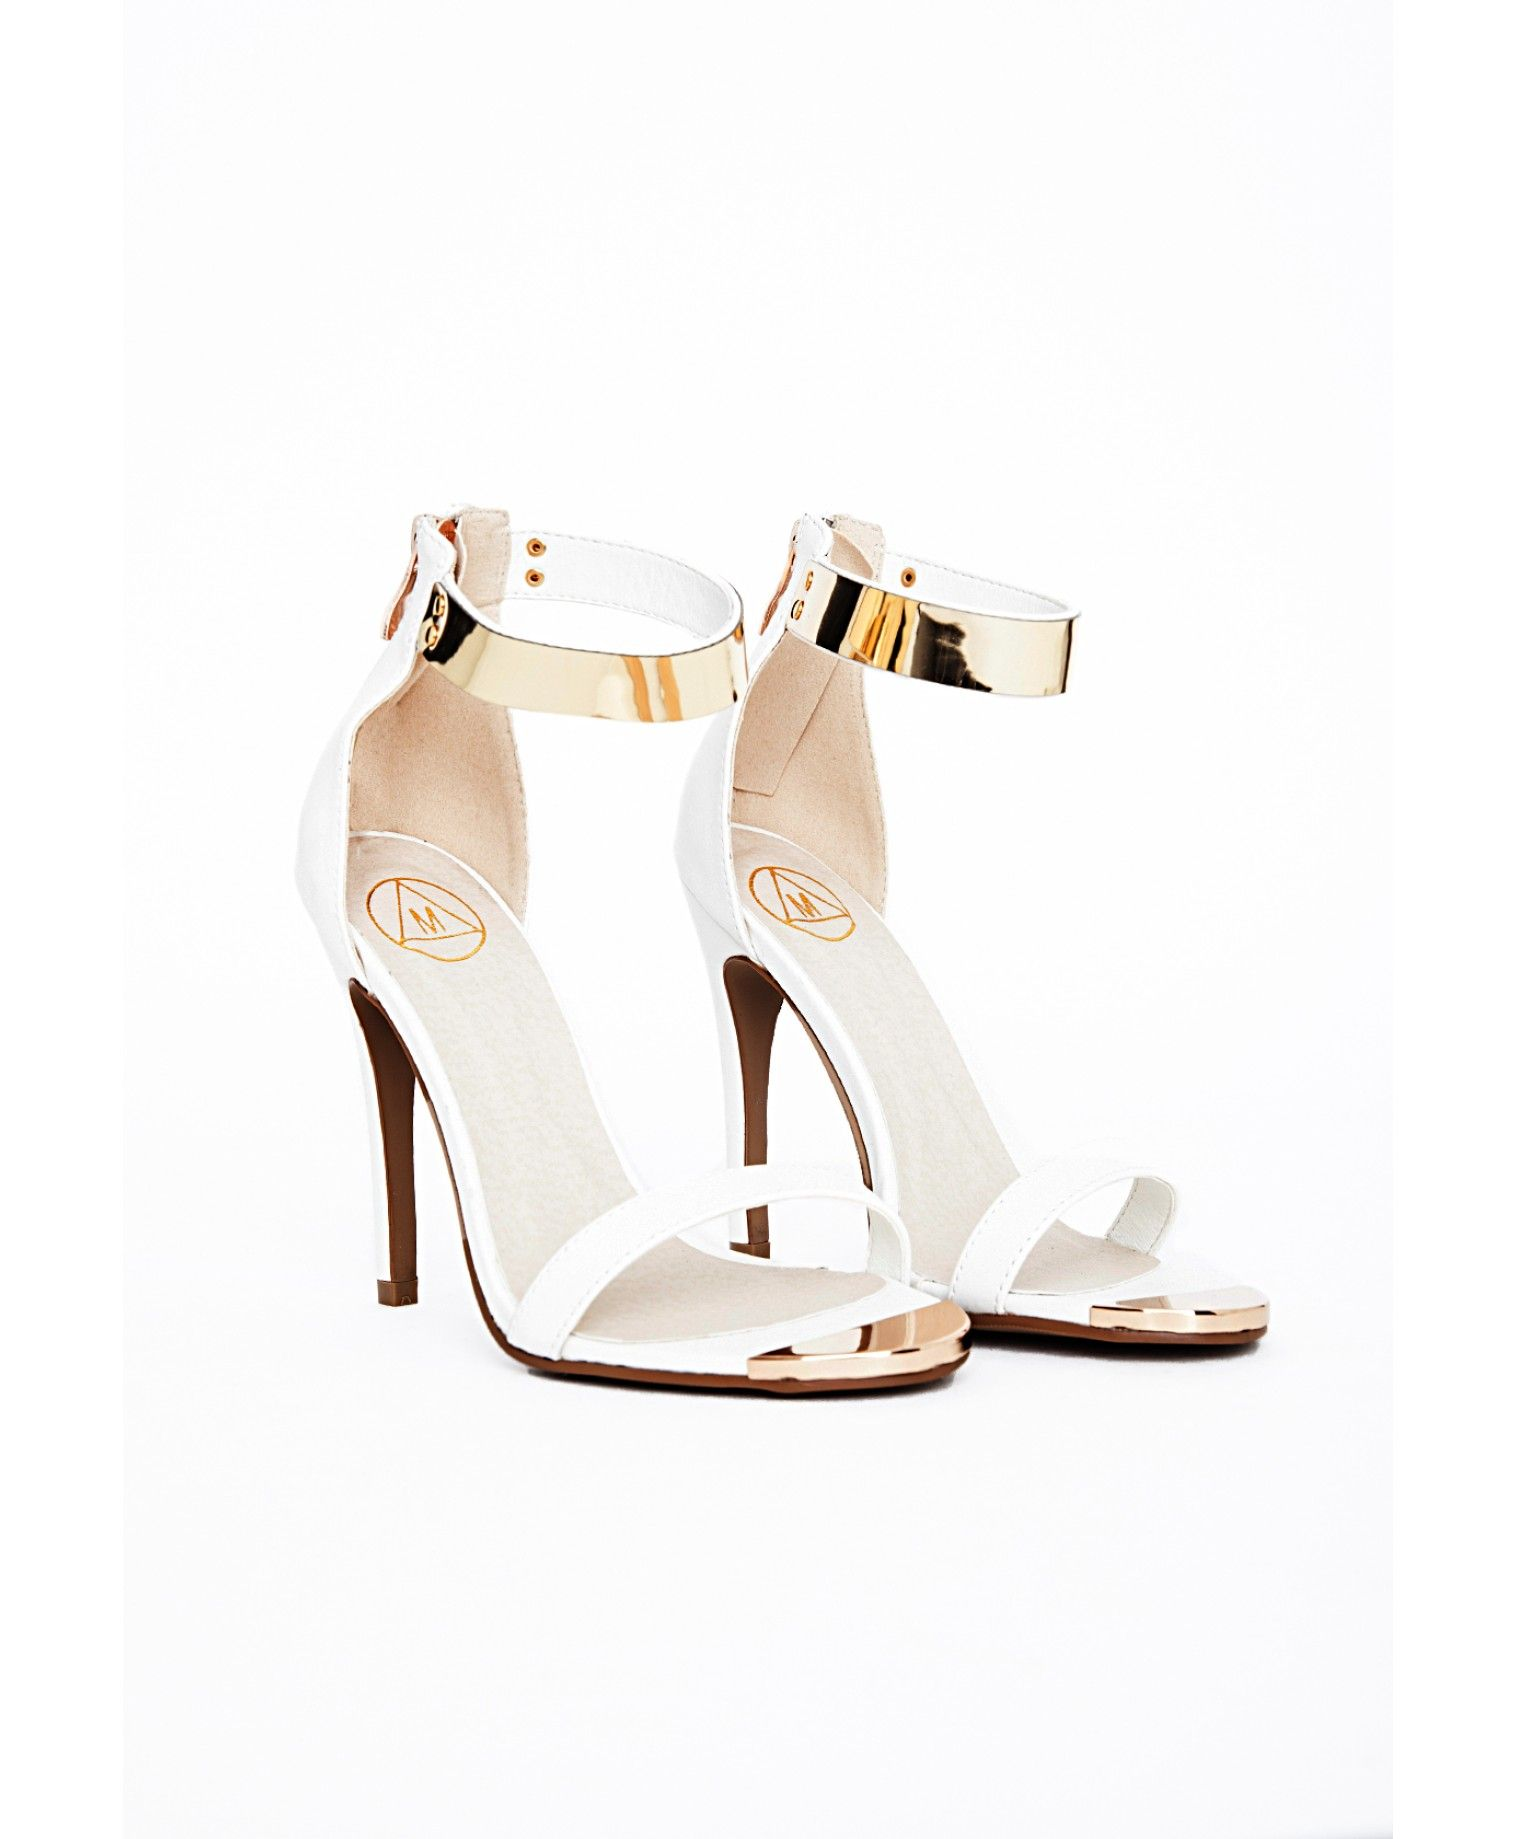 68c11f2a30 Kim Gold Plate Ankle Strap Heeled Sandals White - Shoes - High Heels -  Missguided